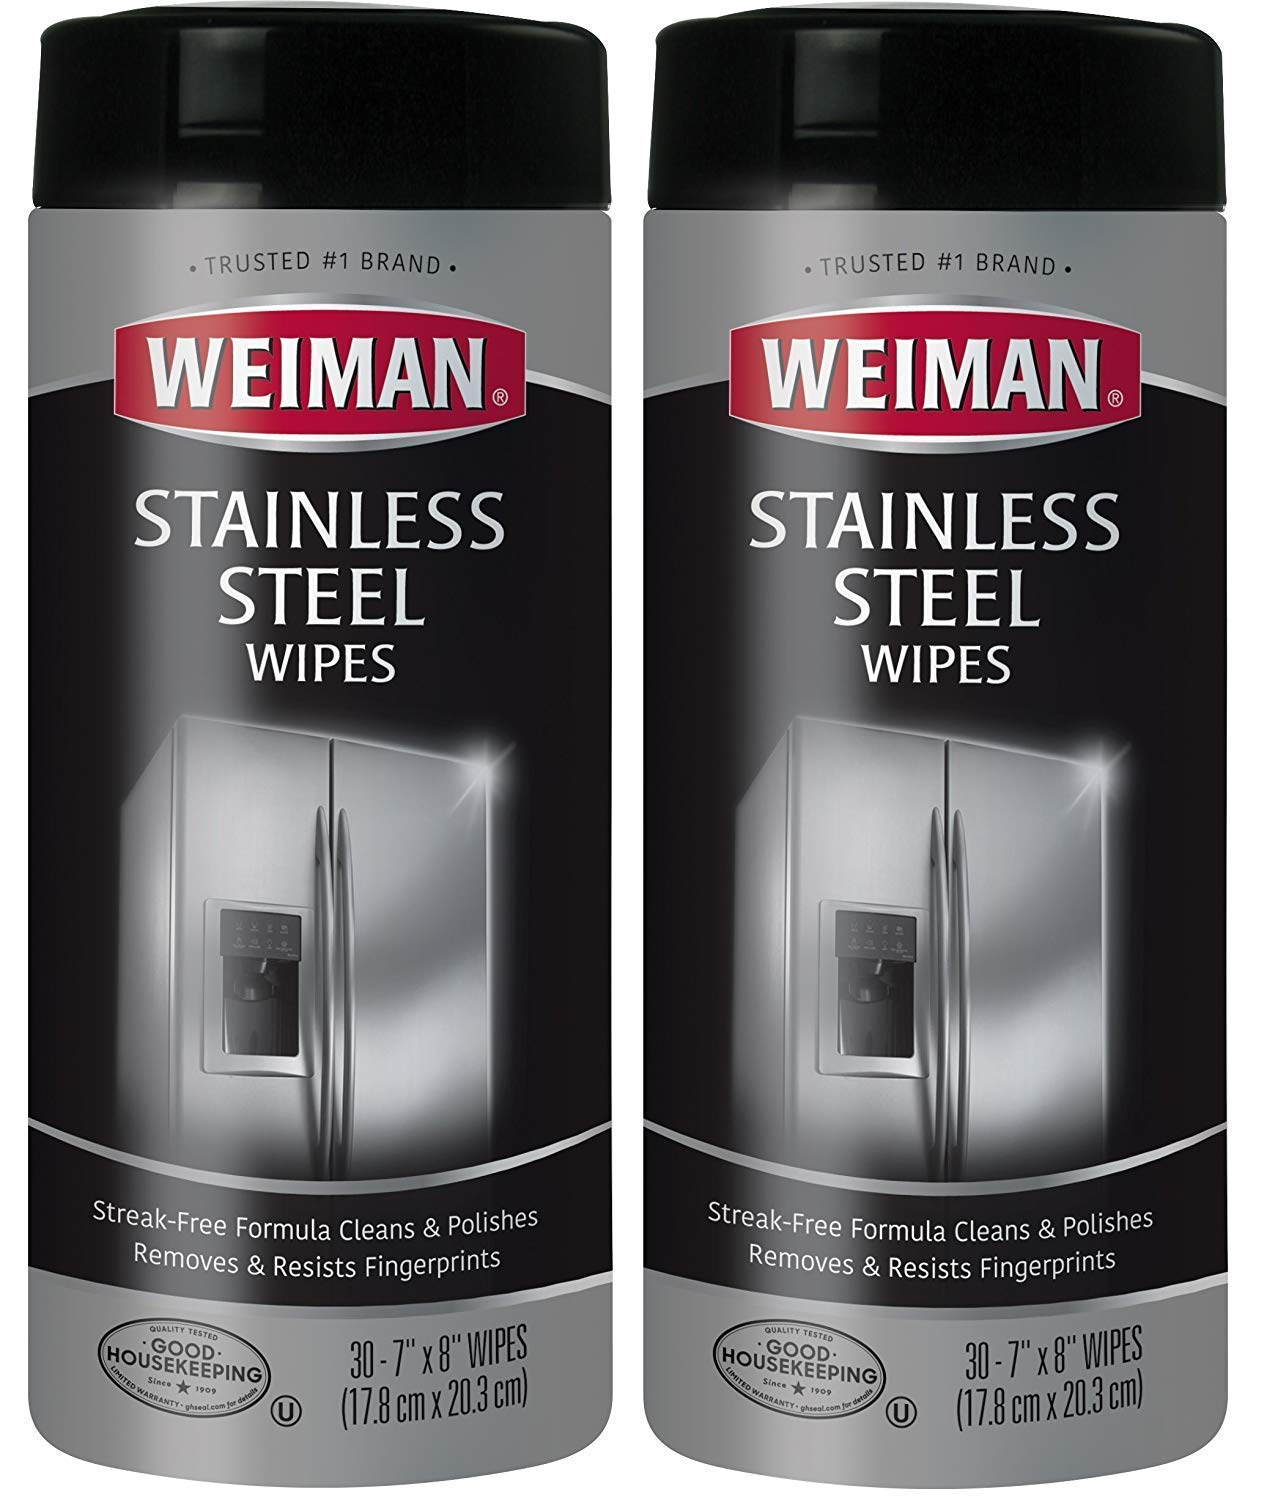 Weiman Stainless Steel Cleaning Wipes [2 Pack] Removes Fingerprints, Residue, Water Marks and Grease From Appliances - Works Great on Refrigerators, Dishwashers, Ovens, Grills and More(8 x 6.6 x 3.2) by Weiman